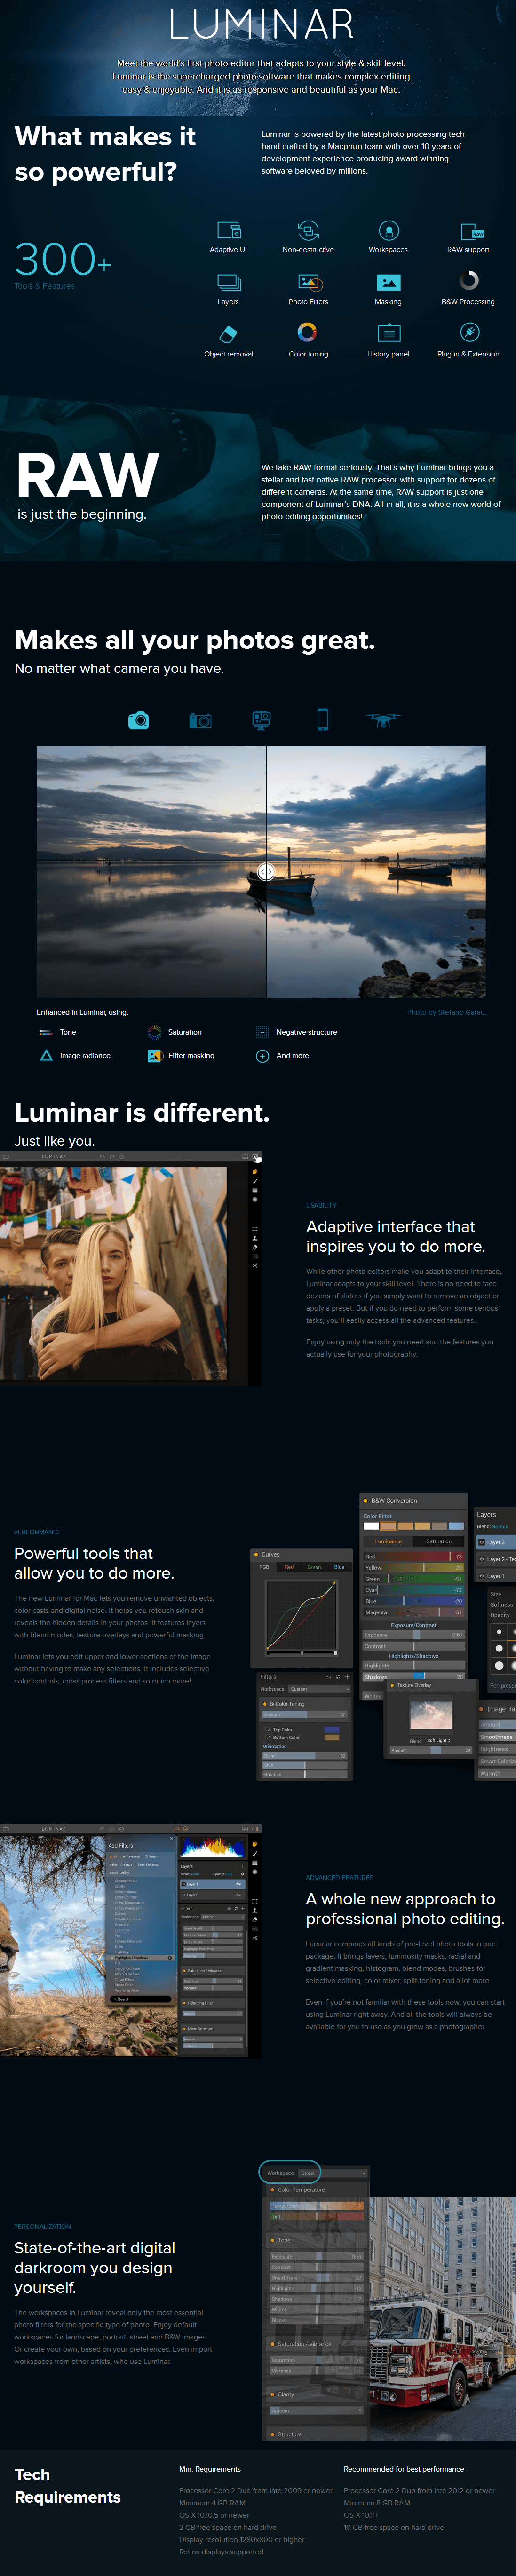 Luminar for Mac key Features